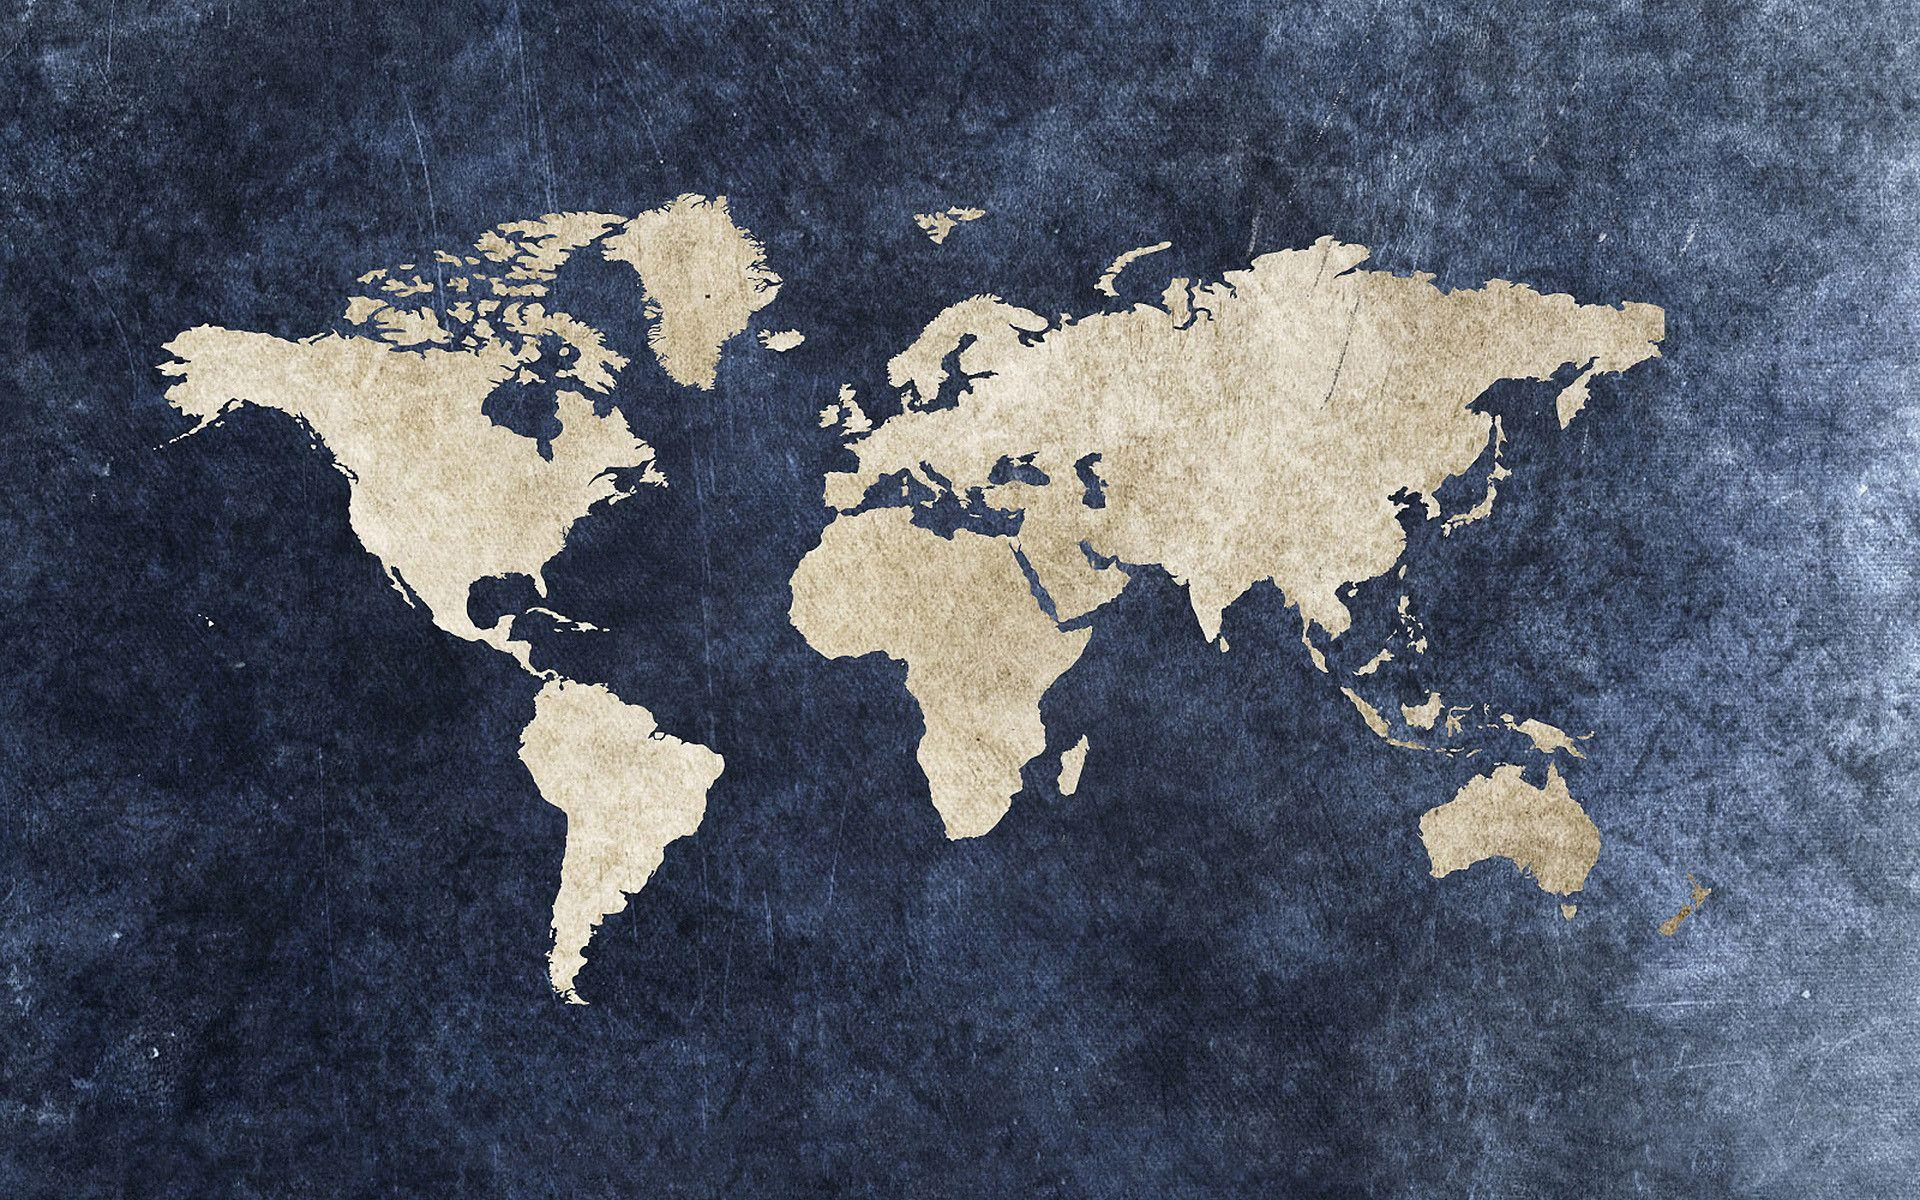 World Map Wall Paper world map wallpapers high resolution - wallpaper cave